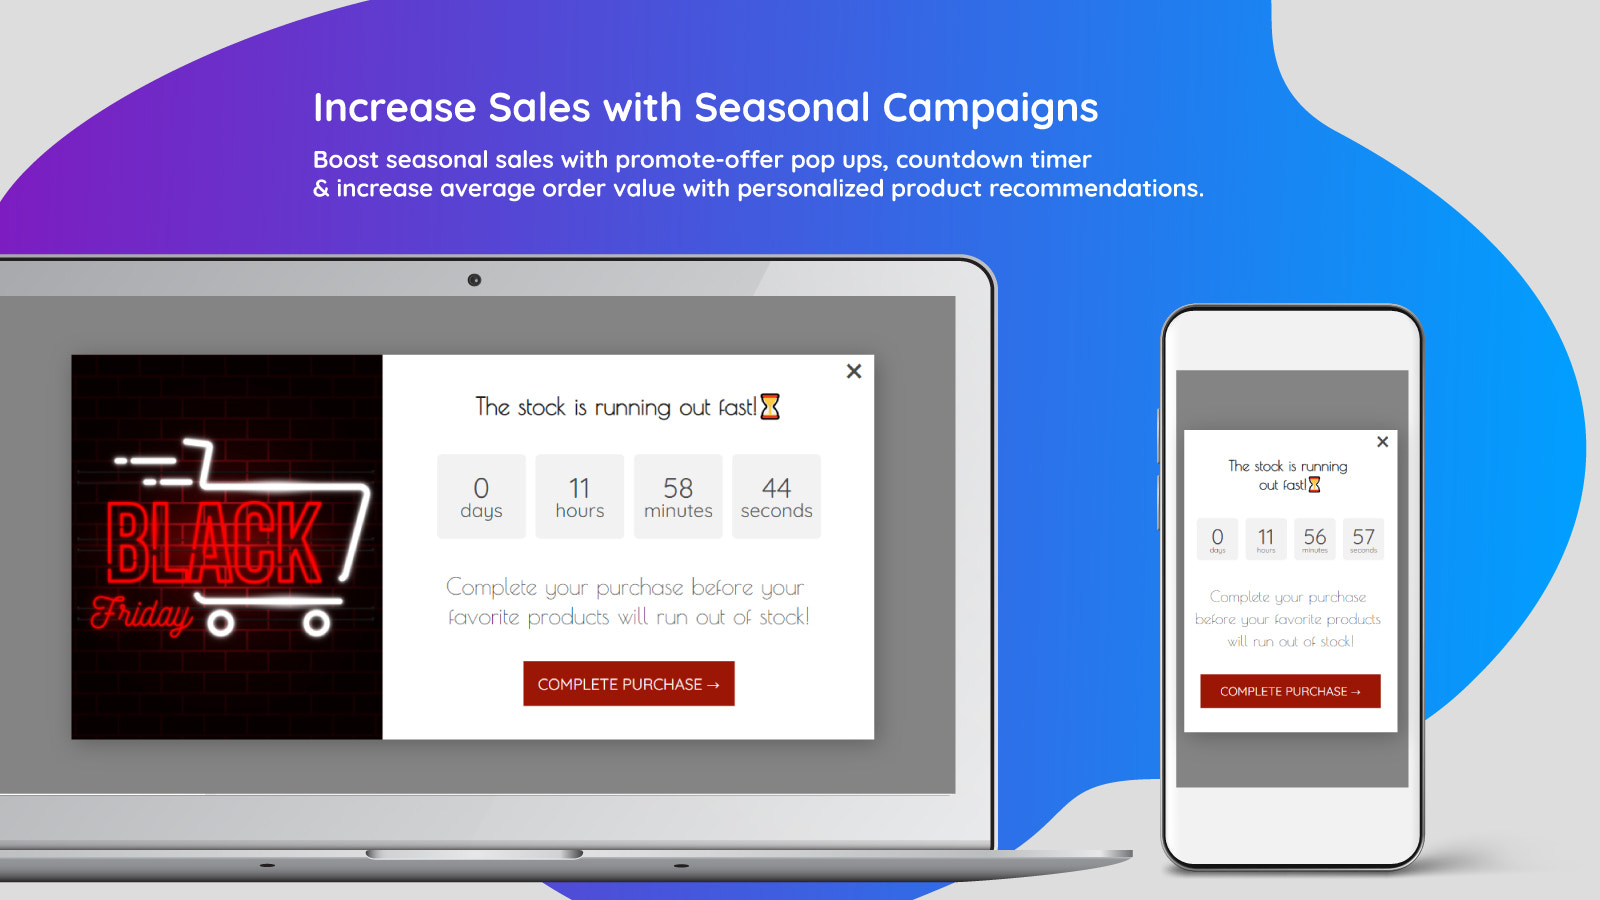 Promote-offer pop ups and countdown timers.